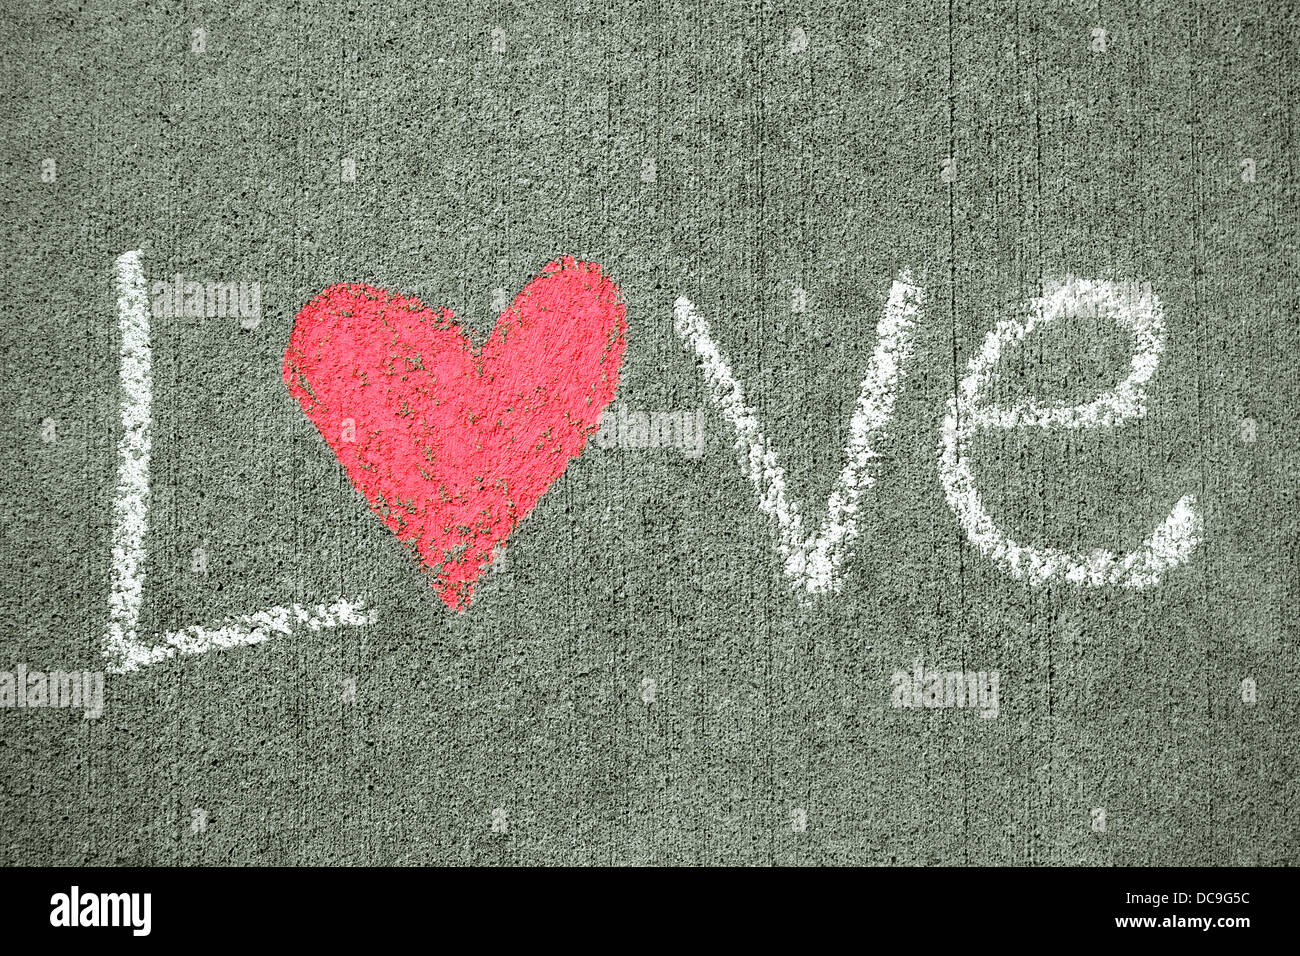 the word love is written in white chalk on a sidewalk, and has a pink heart for the letter o. - Stock Image